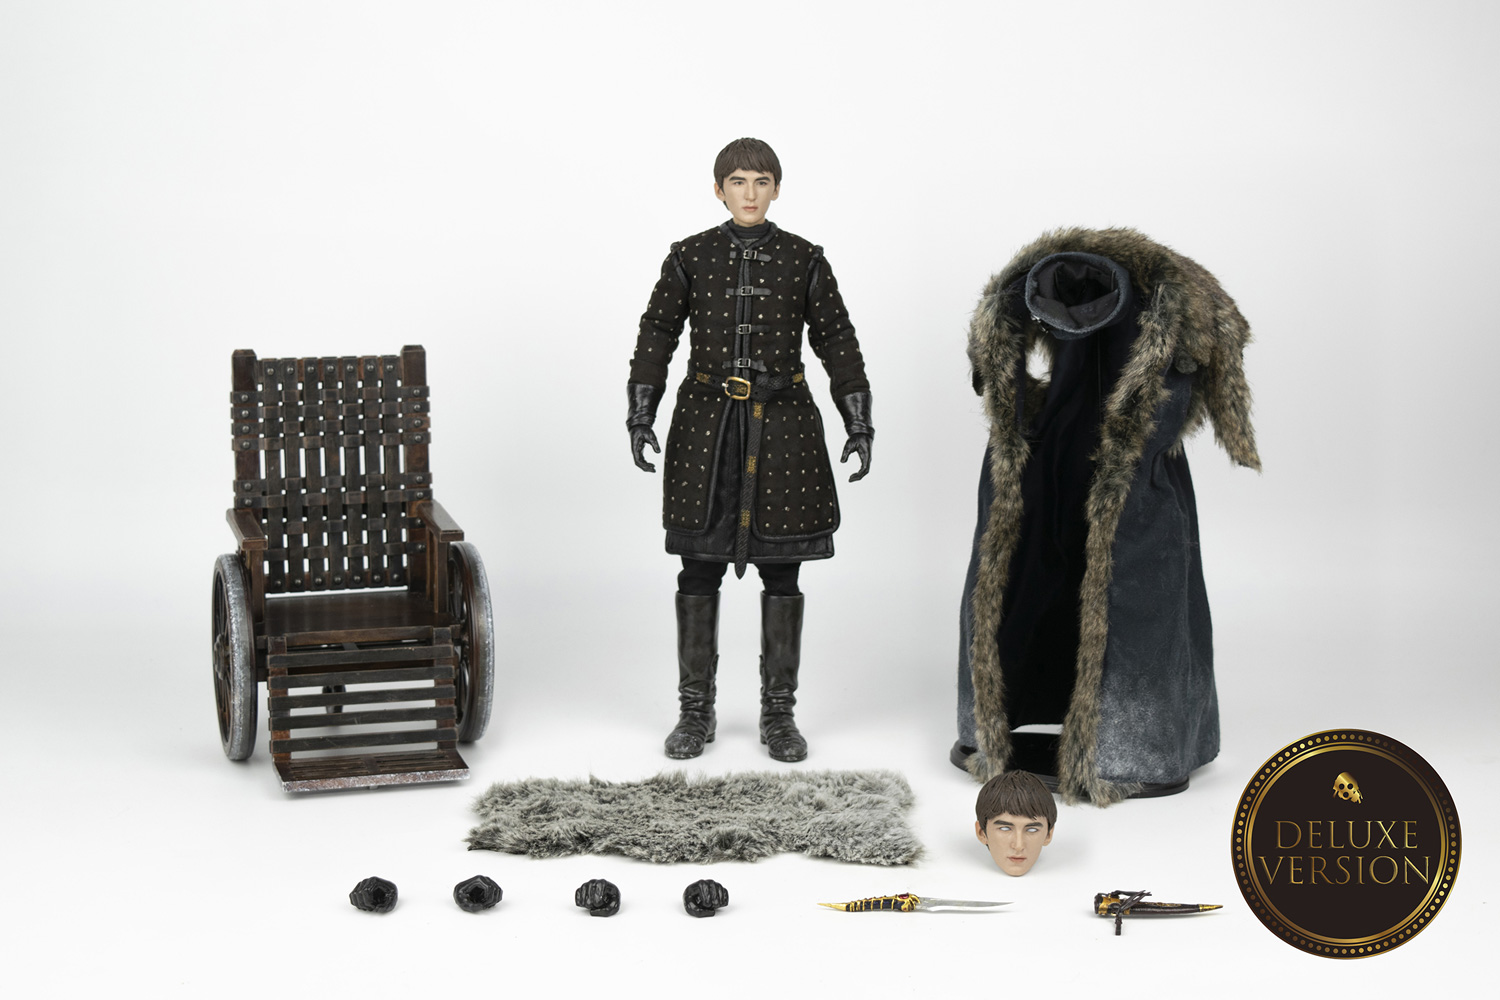 Game of Thrones Figure: Bran Stark  (Deluxe Edition) (1/6 Scale) - Three A Trading Company Ltd